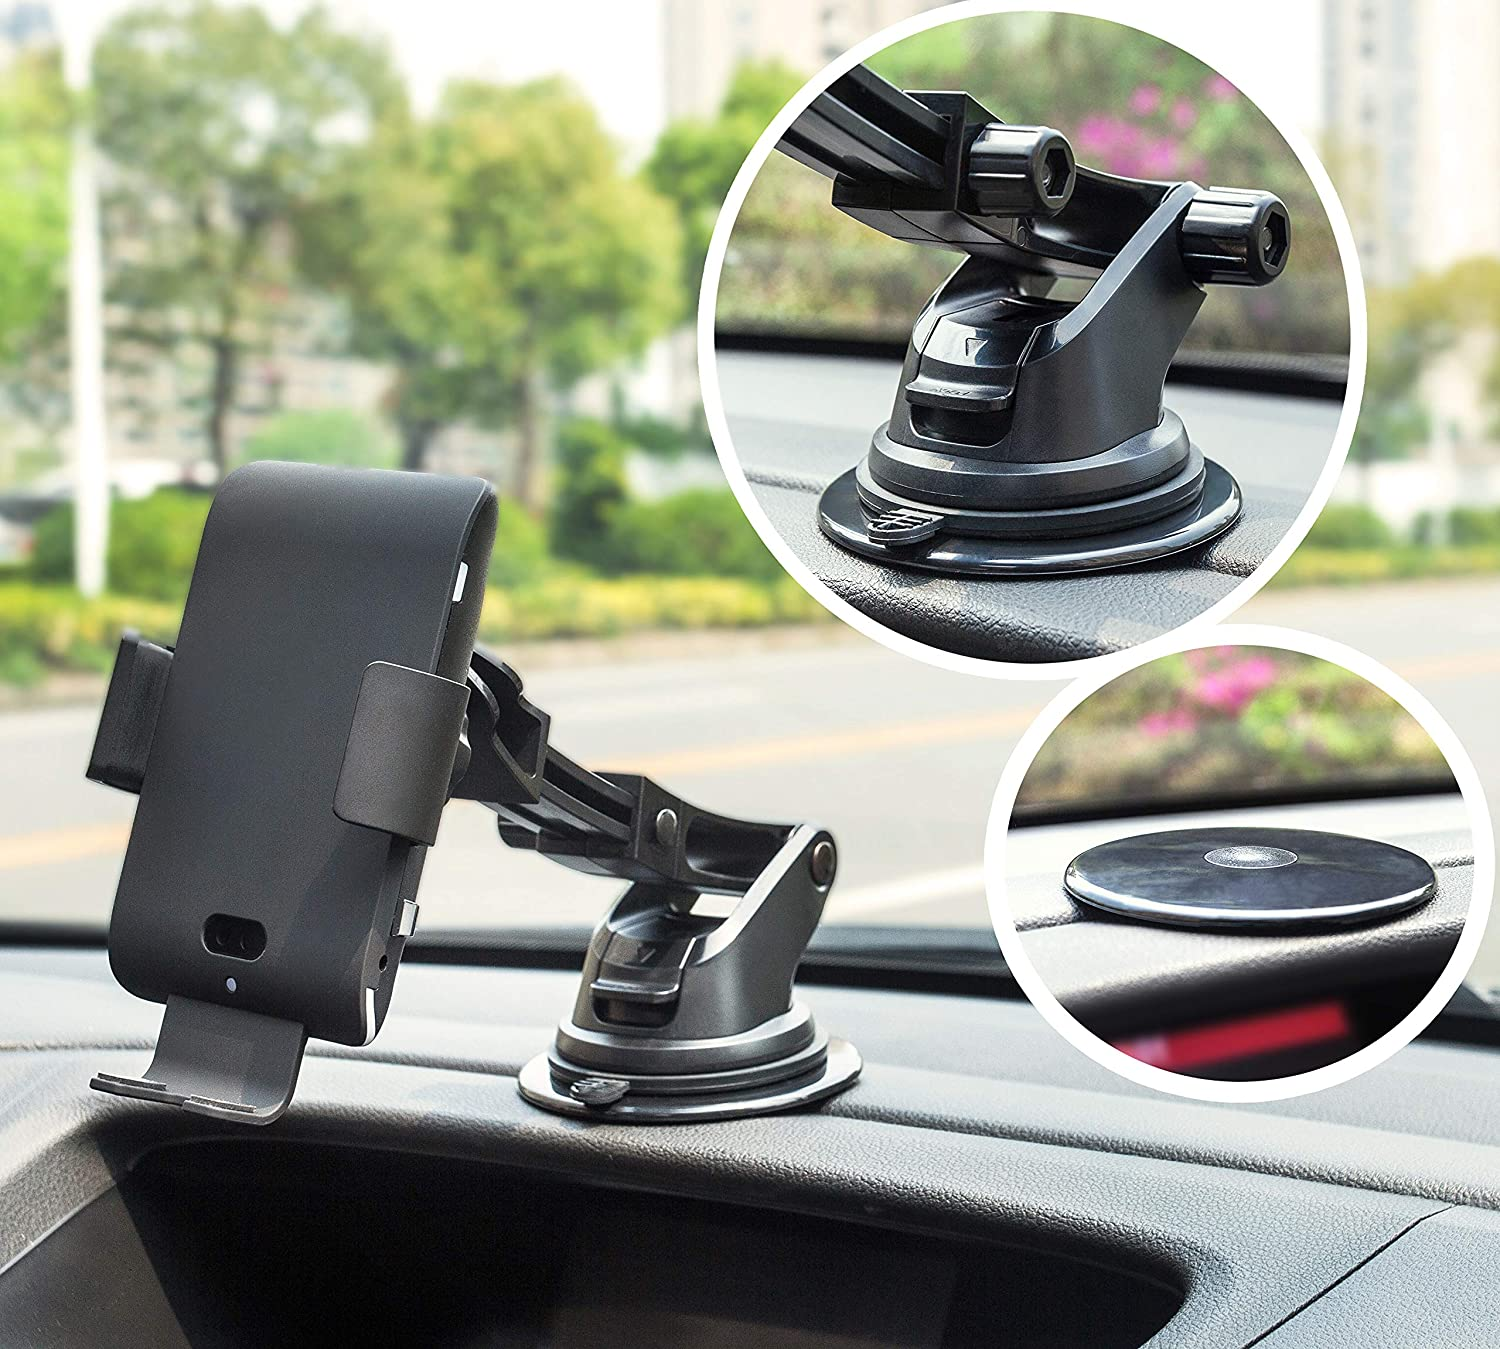 Samsung S10 S9 S8 Note 9 Dashboard Air Vent Phone Holder Compatible with iPhone X Xs Max XR 8 Voice Activate Auto Clamping Qi 10//7.5W Fast Charging /& 5W Car Mount LEXONIX Wireless Car Charger Mount